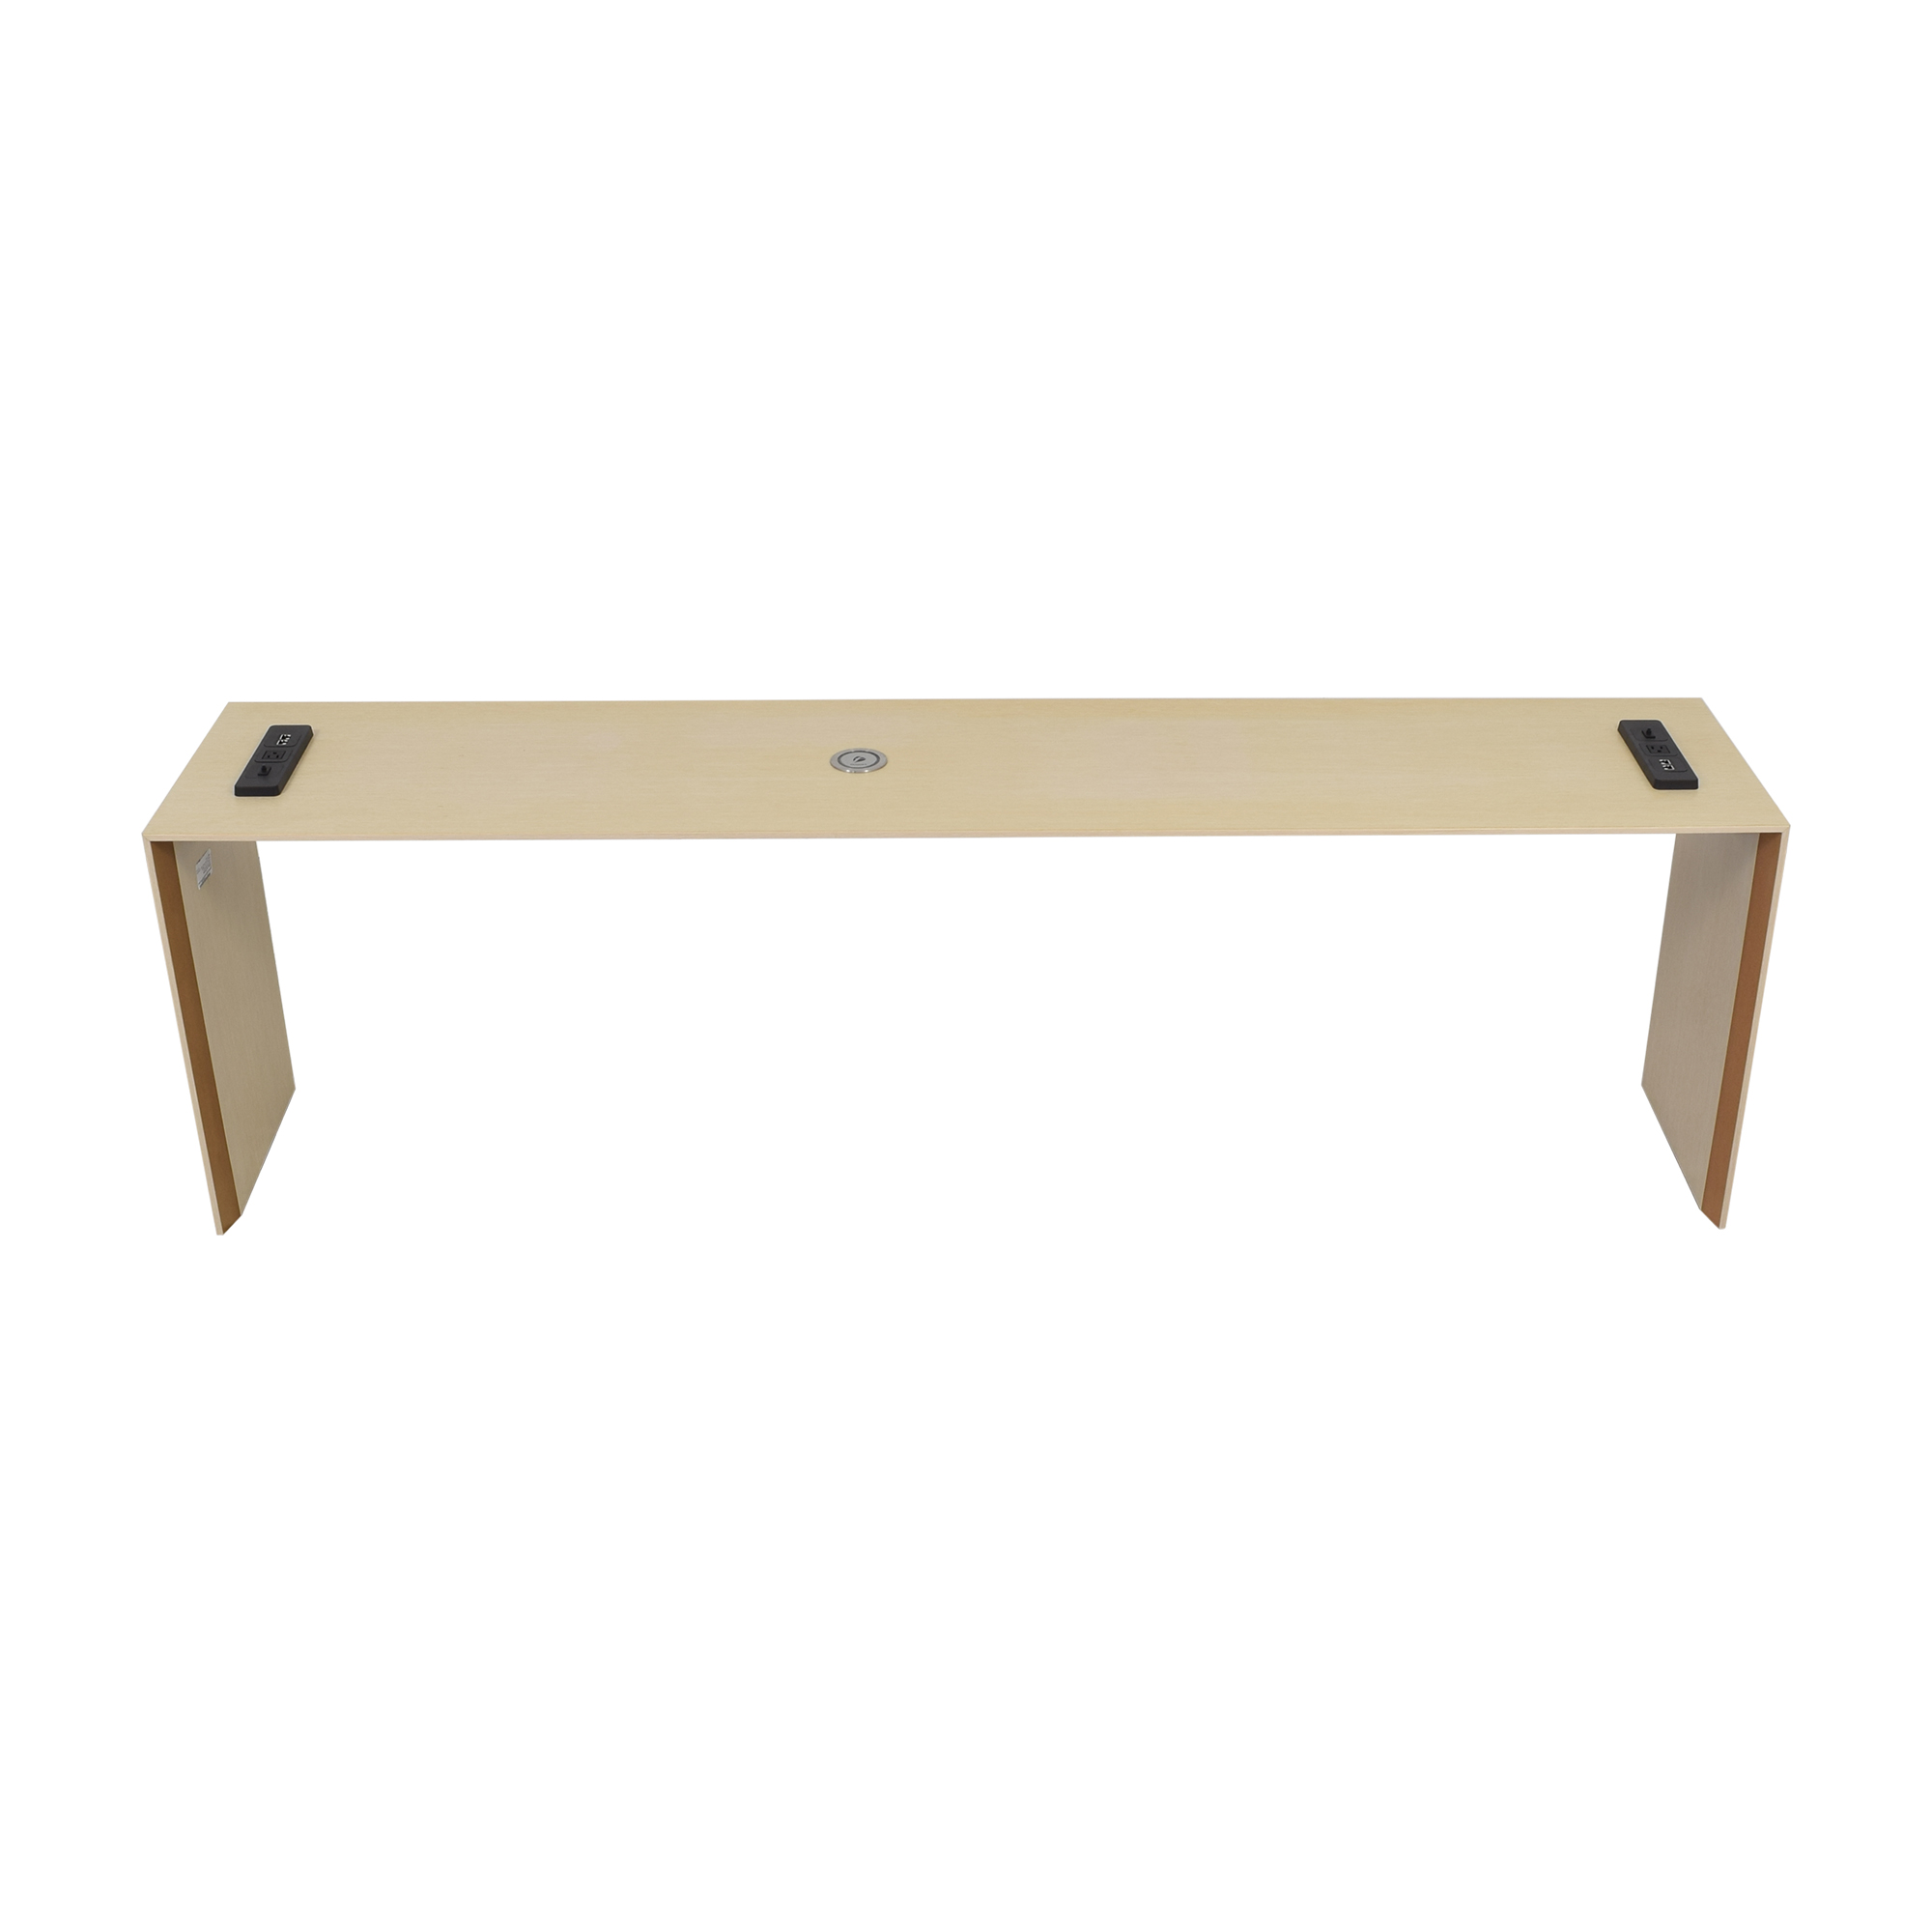 shop Koleksiyon Ray Accent Table or Narrow Coffee Table Koleksiyon Utility Tables